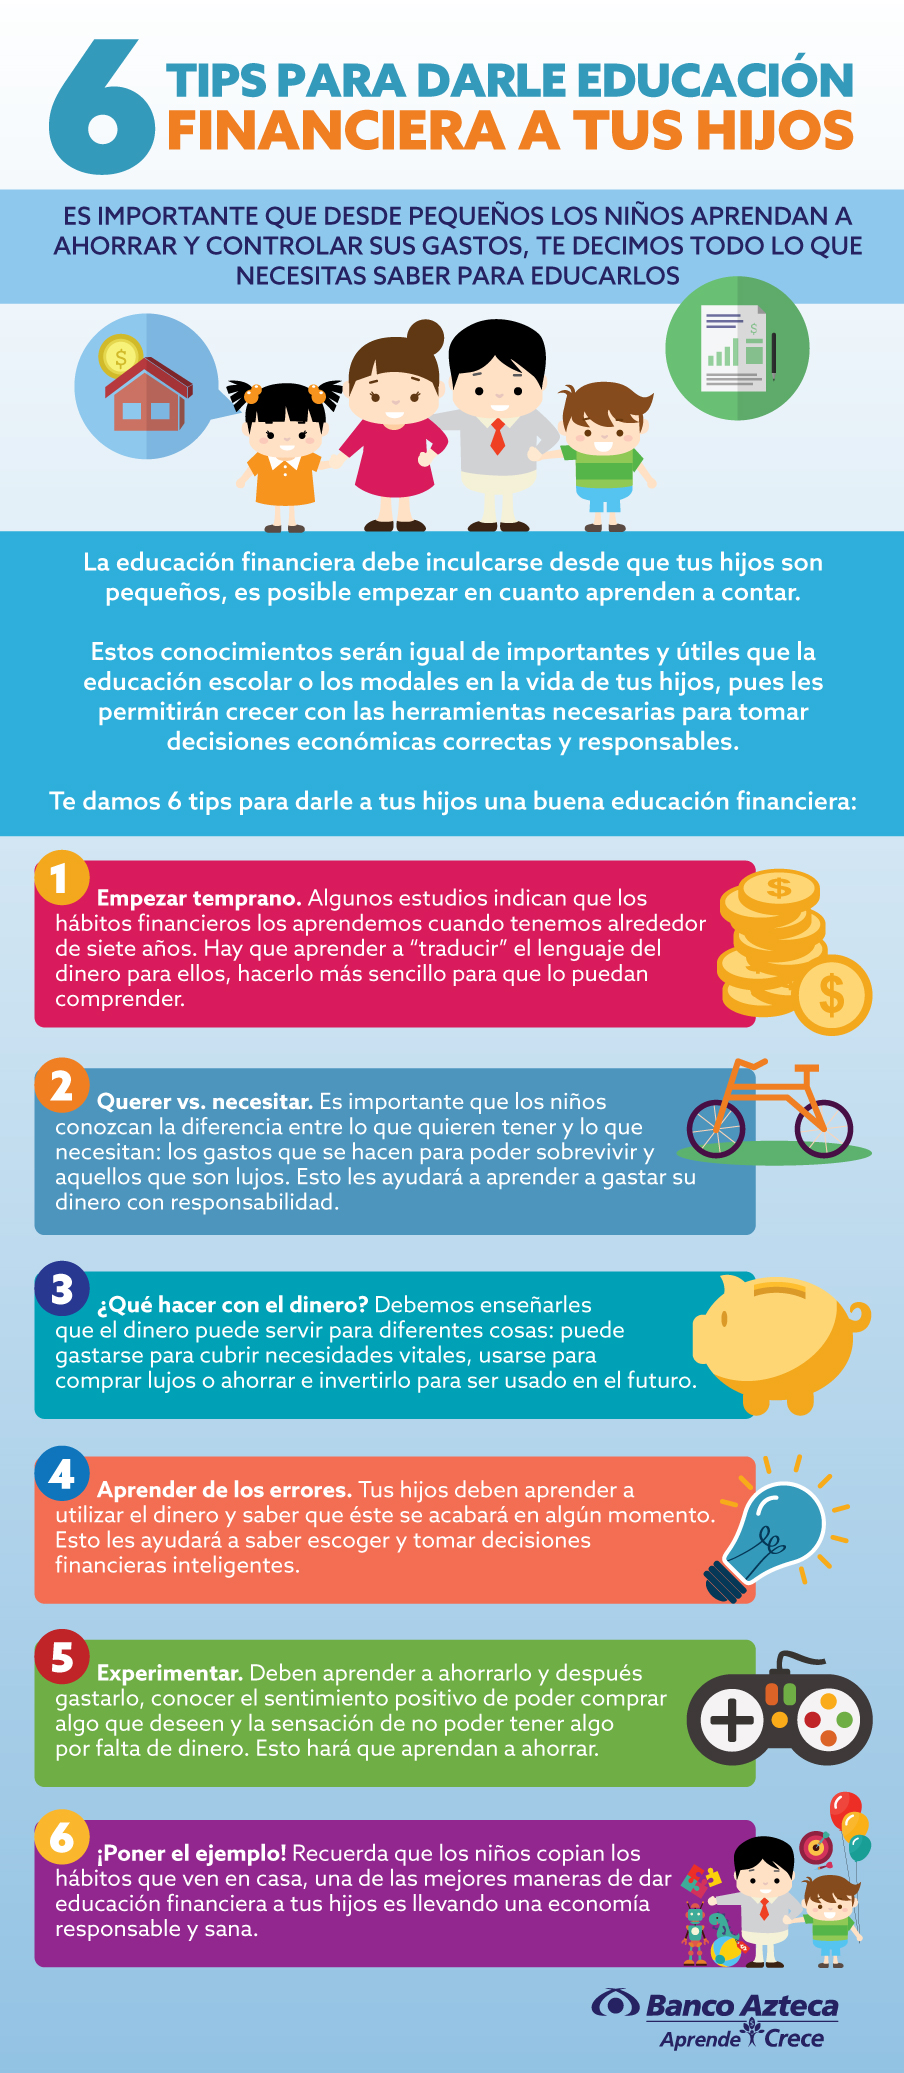 Infografía describe 6 tips